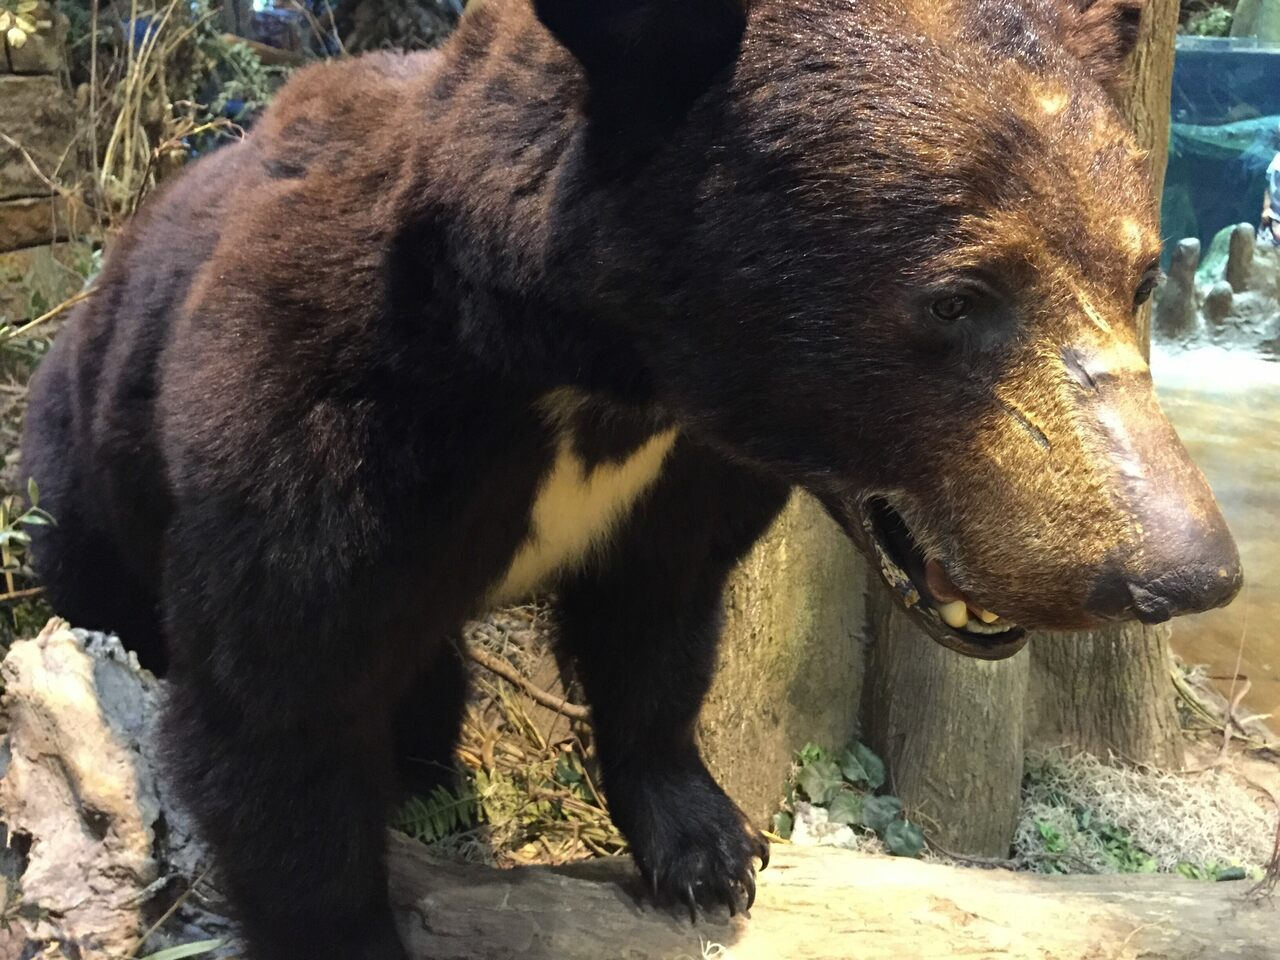 A stuffed black bear that is not Cocaine Bear, but likely resembles him.